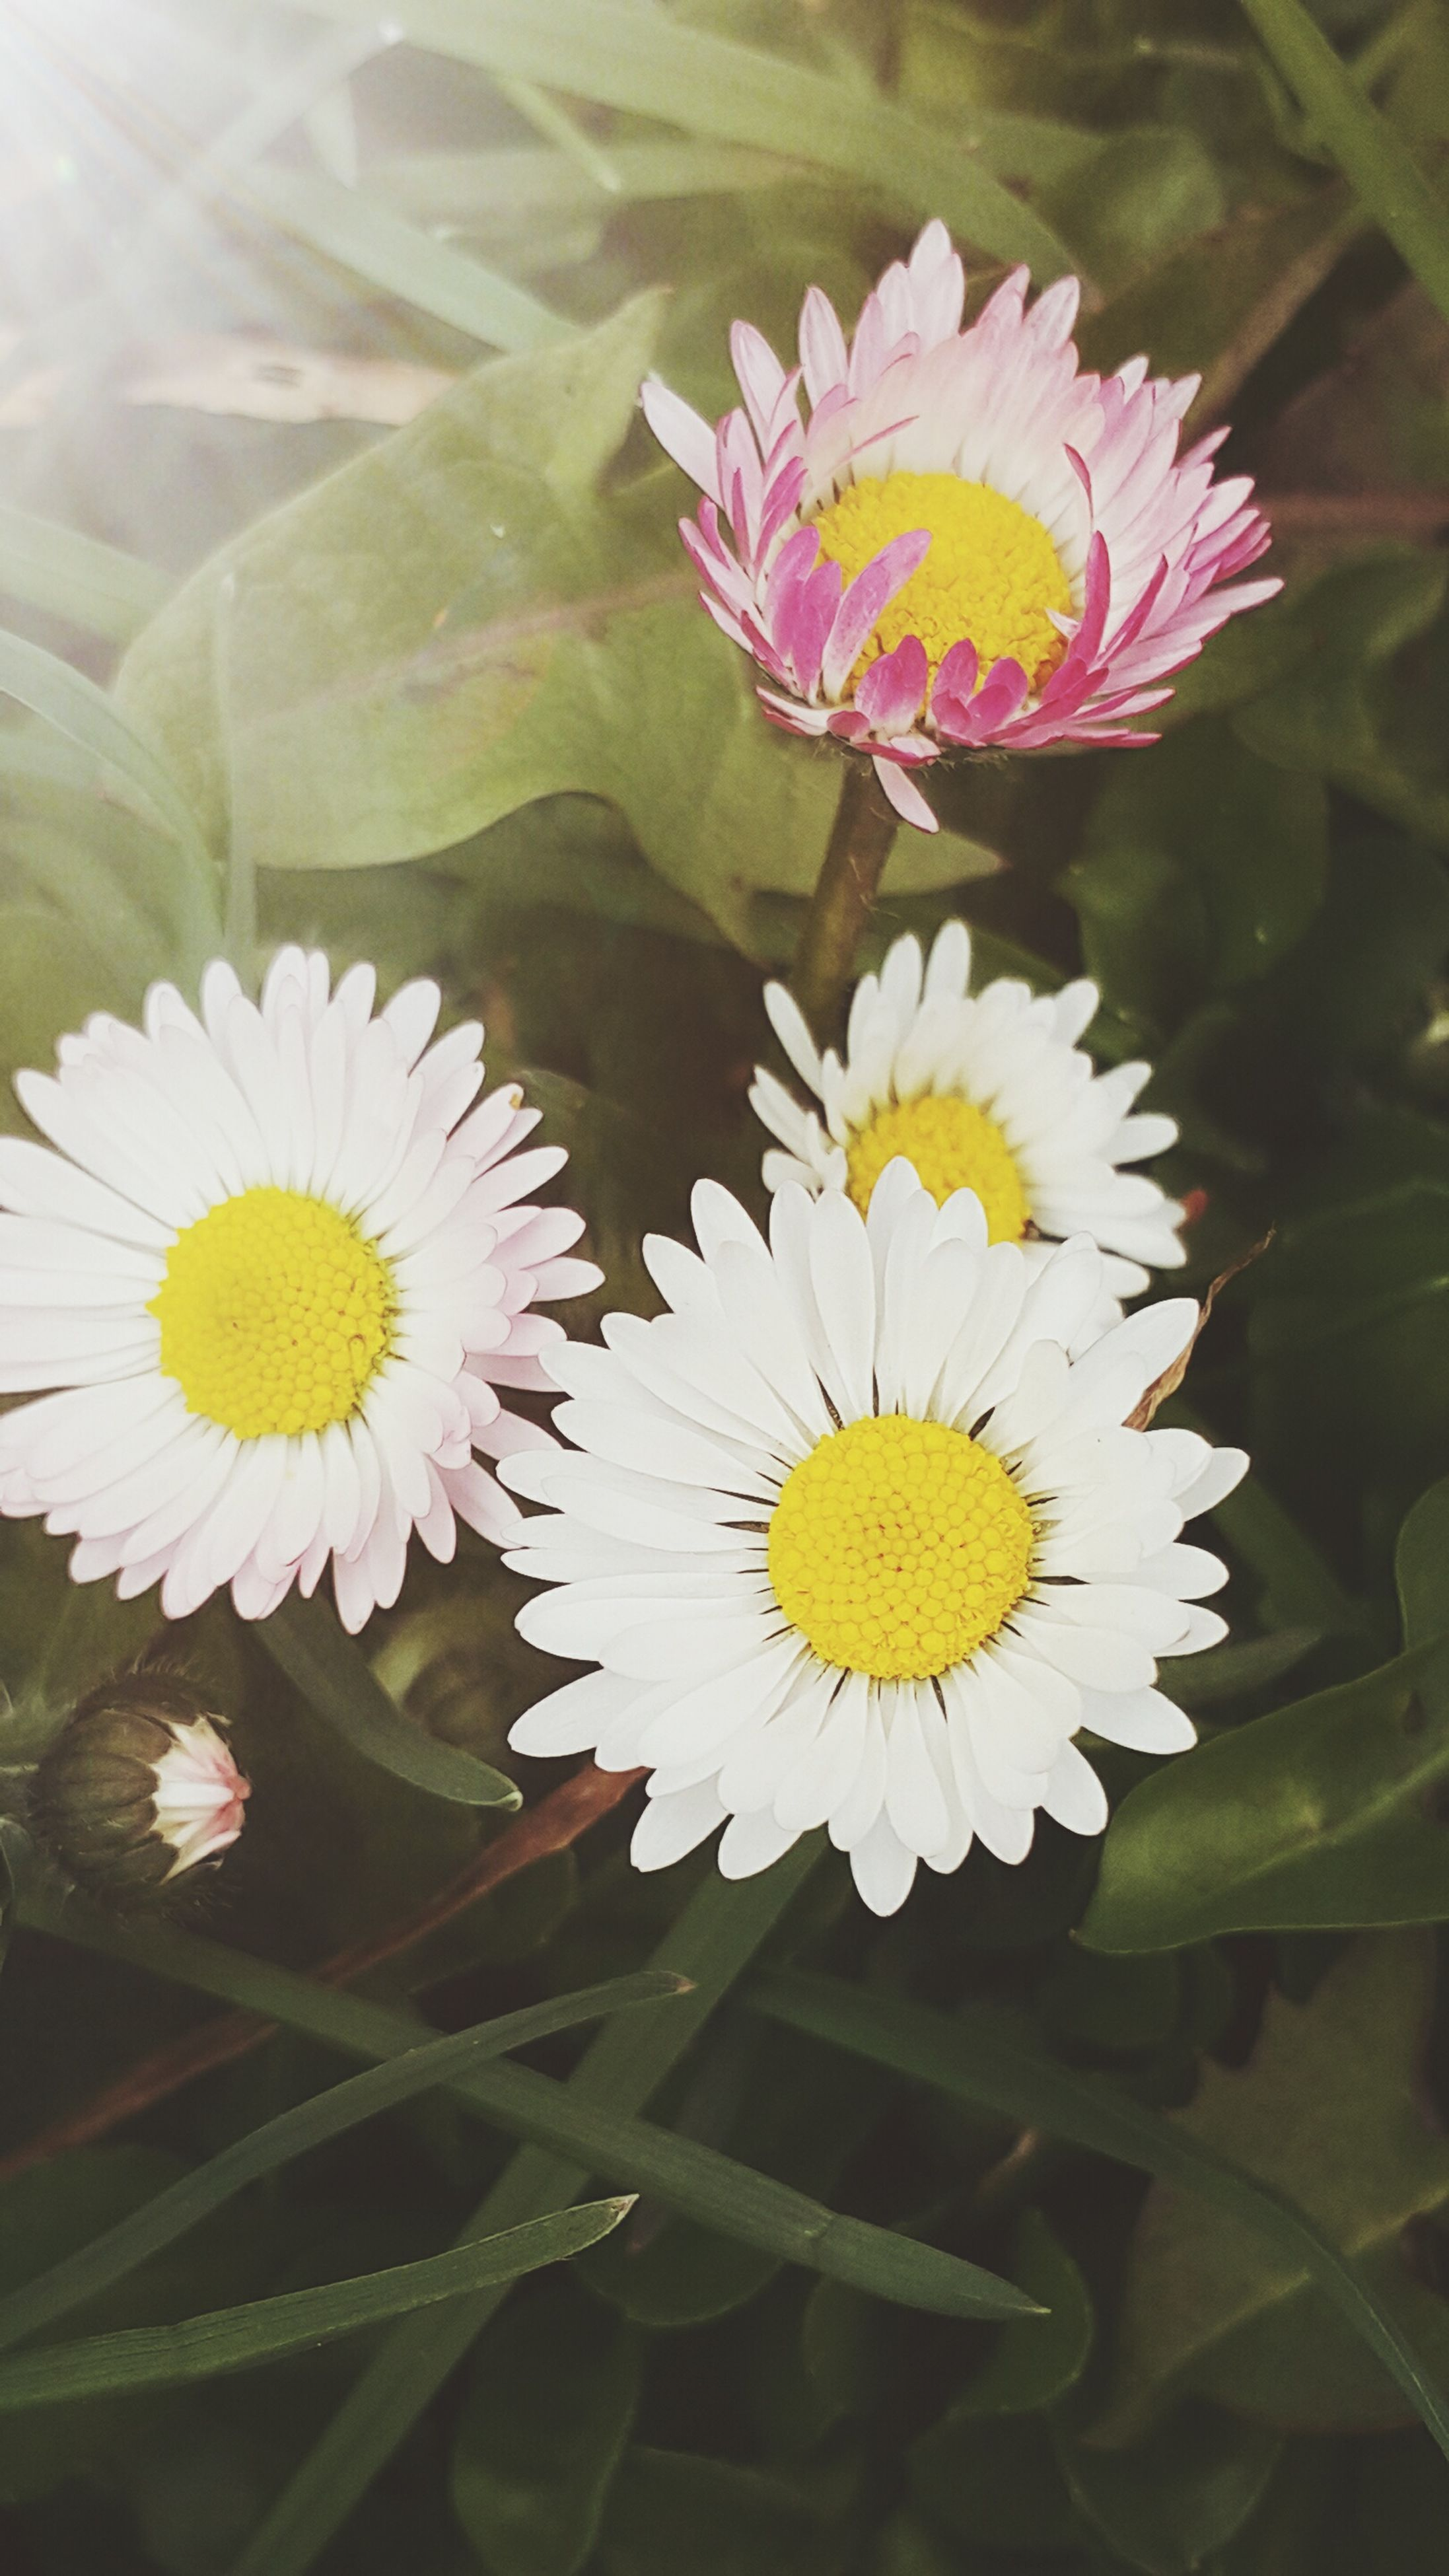 flower, petal, freshness, fragility, flower head, beauty in nature, growth, blooming, pollen, nature, leaf, close-up, plant, white color, in bloom, yellow, daisy, high angle view, blossom, focus on foreground